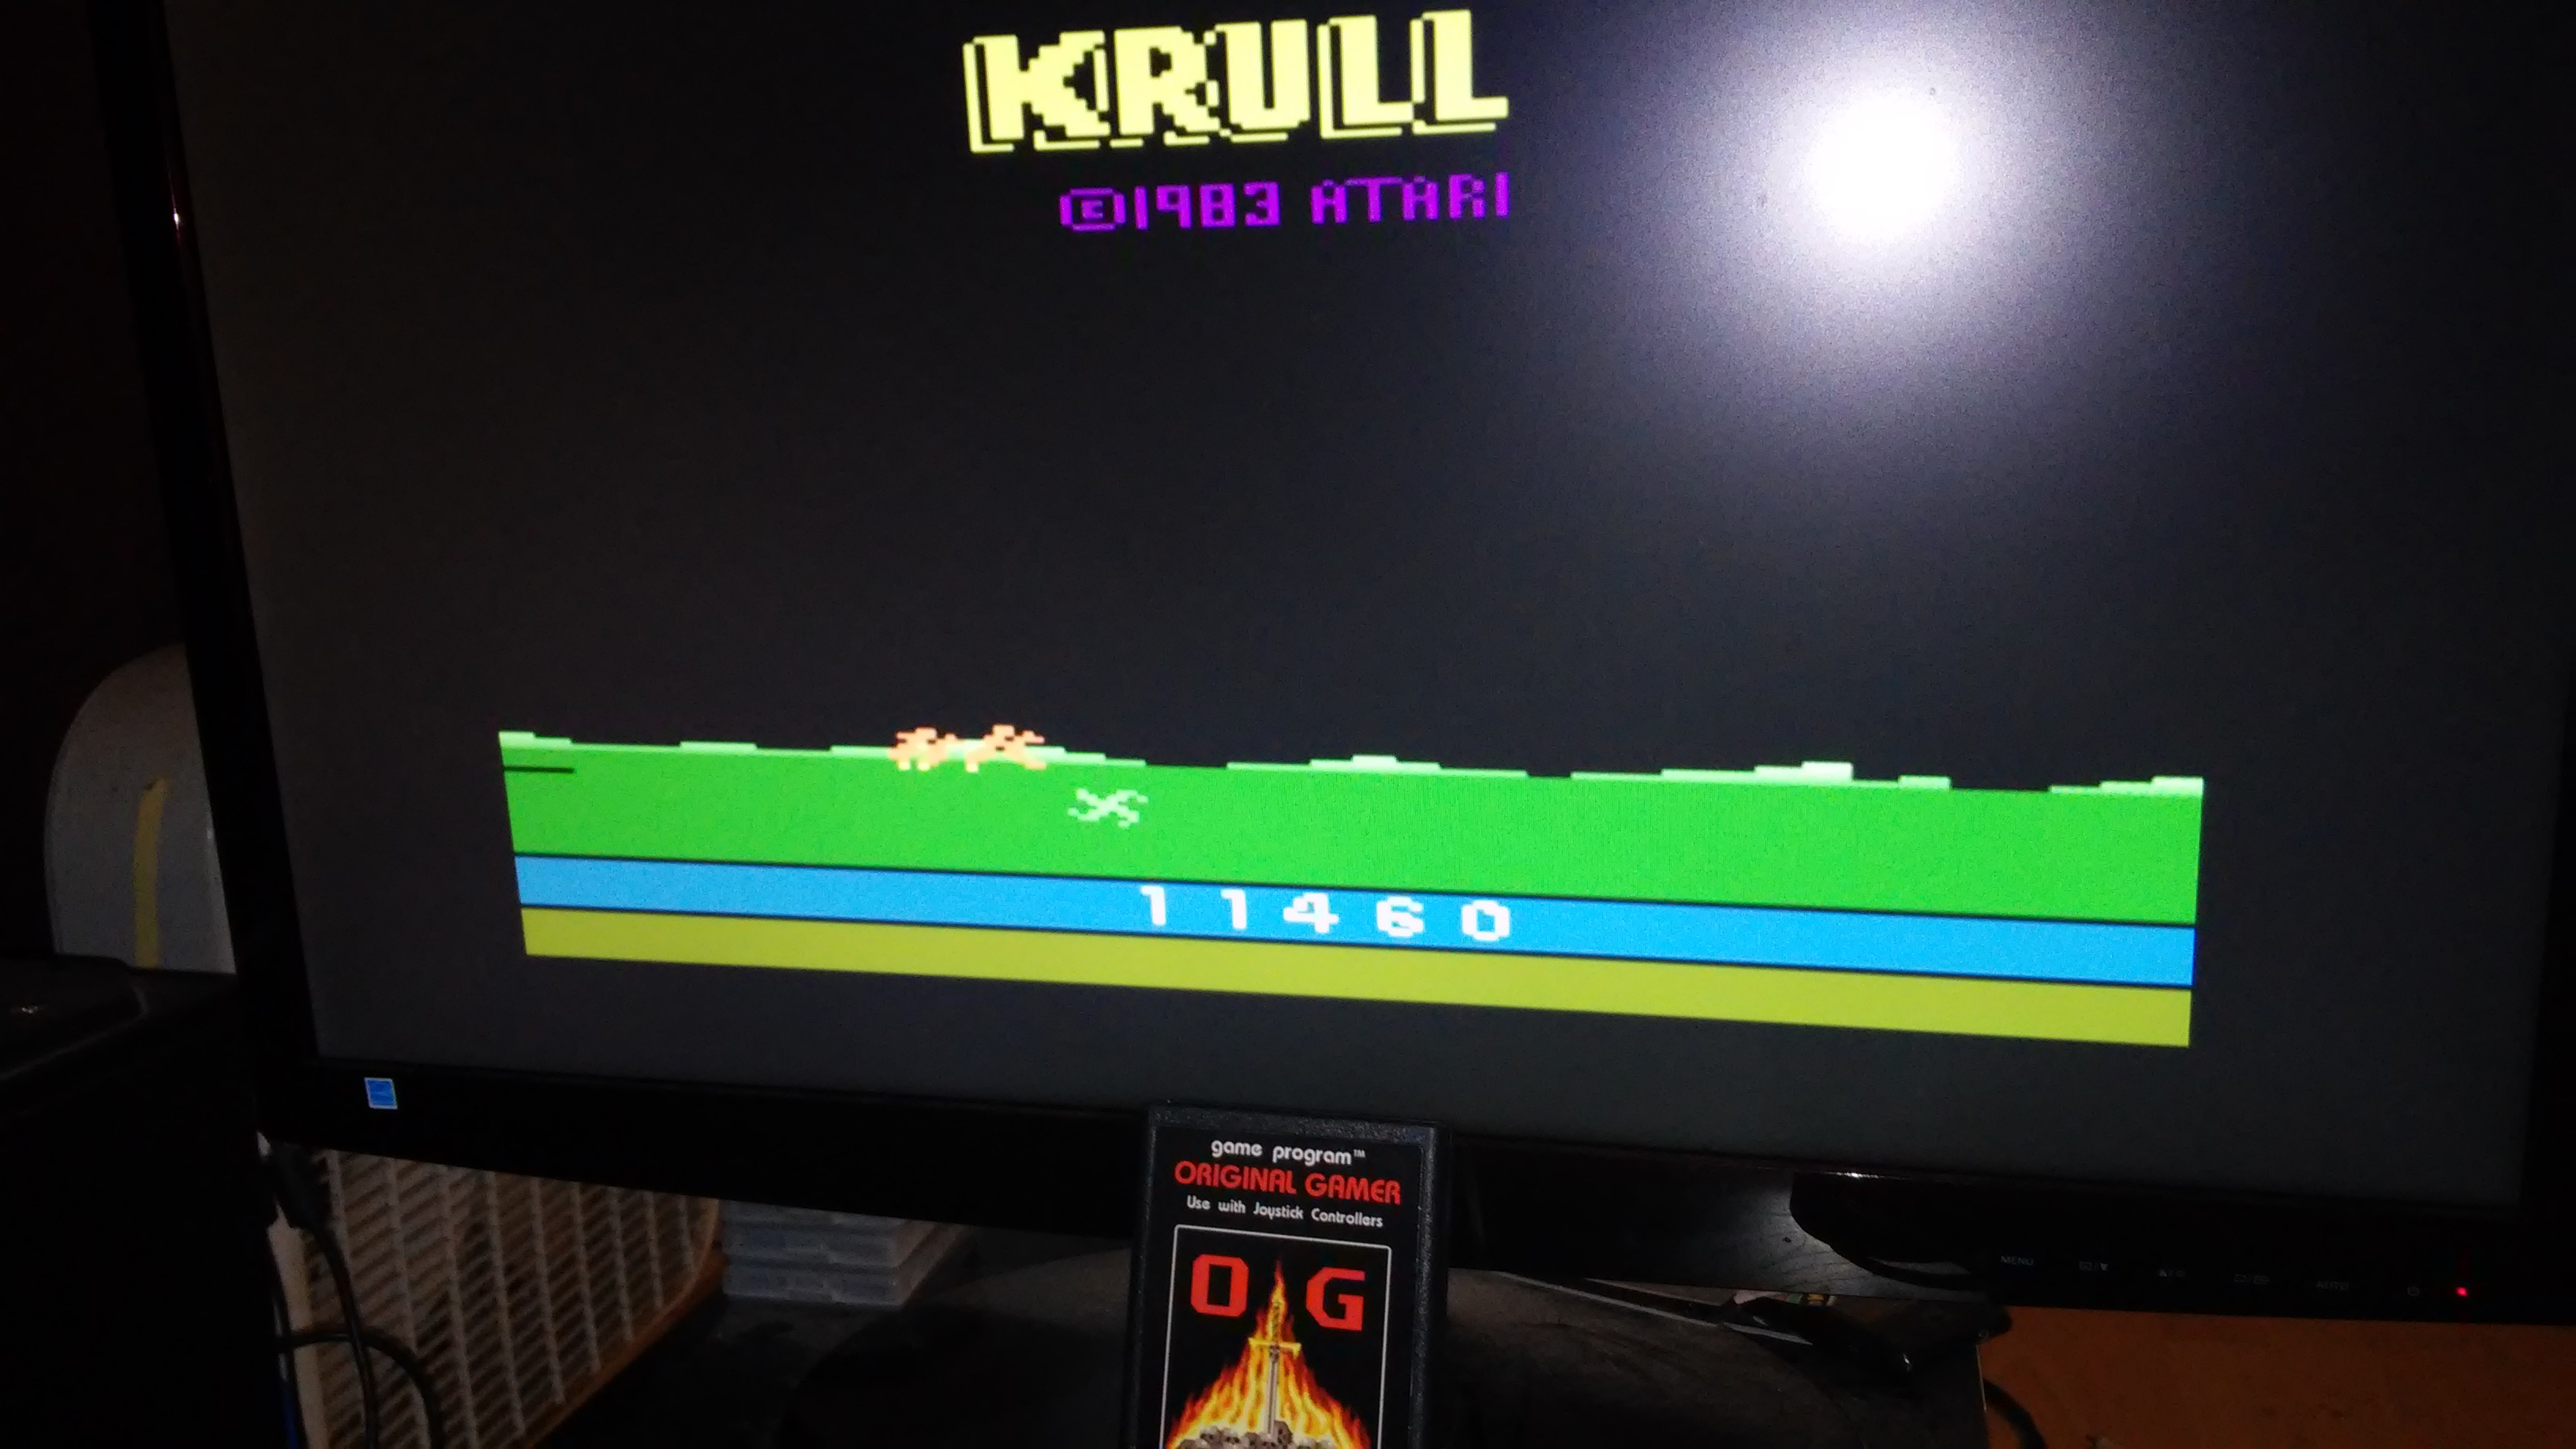 Krull 11,460 points